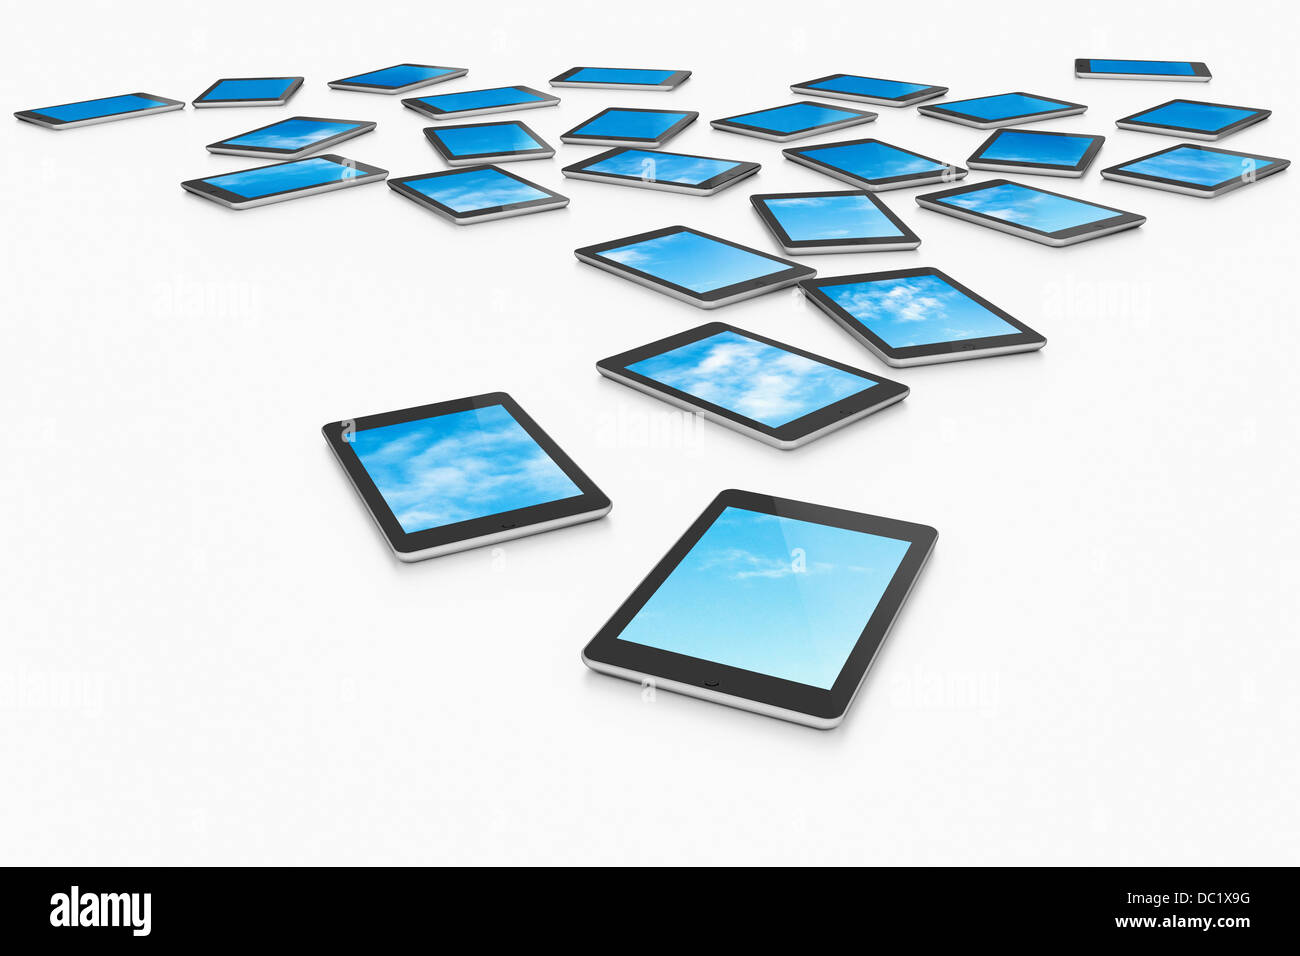 Large group of digital tablets displaying choice of blue skies - Stock Image